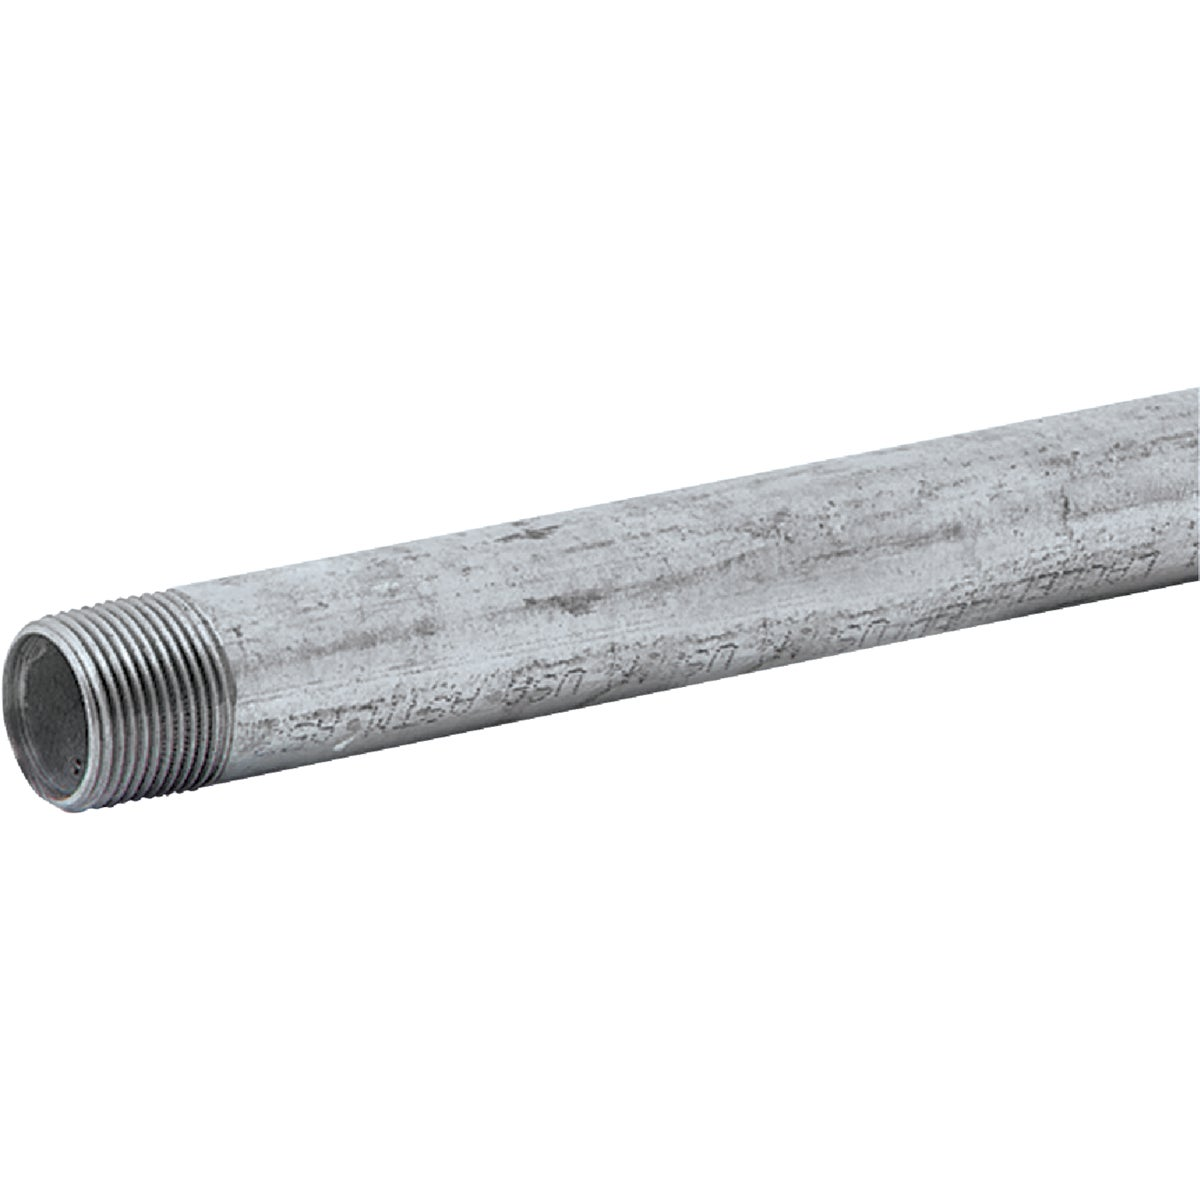 "1-1/4""X10' GALV PIPE - 10724 by Southland Pipe"